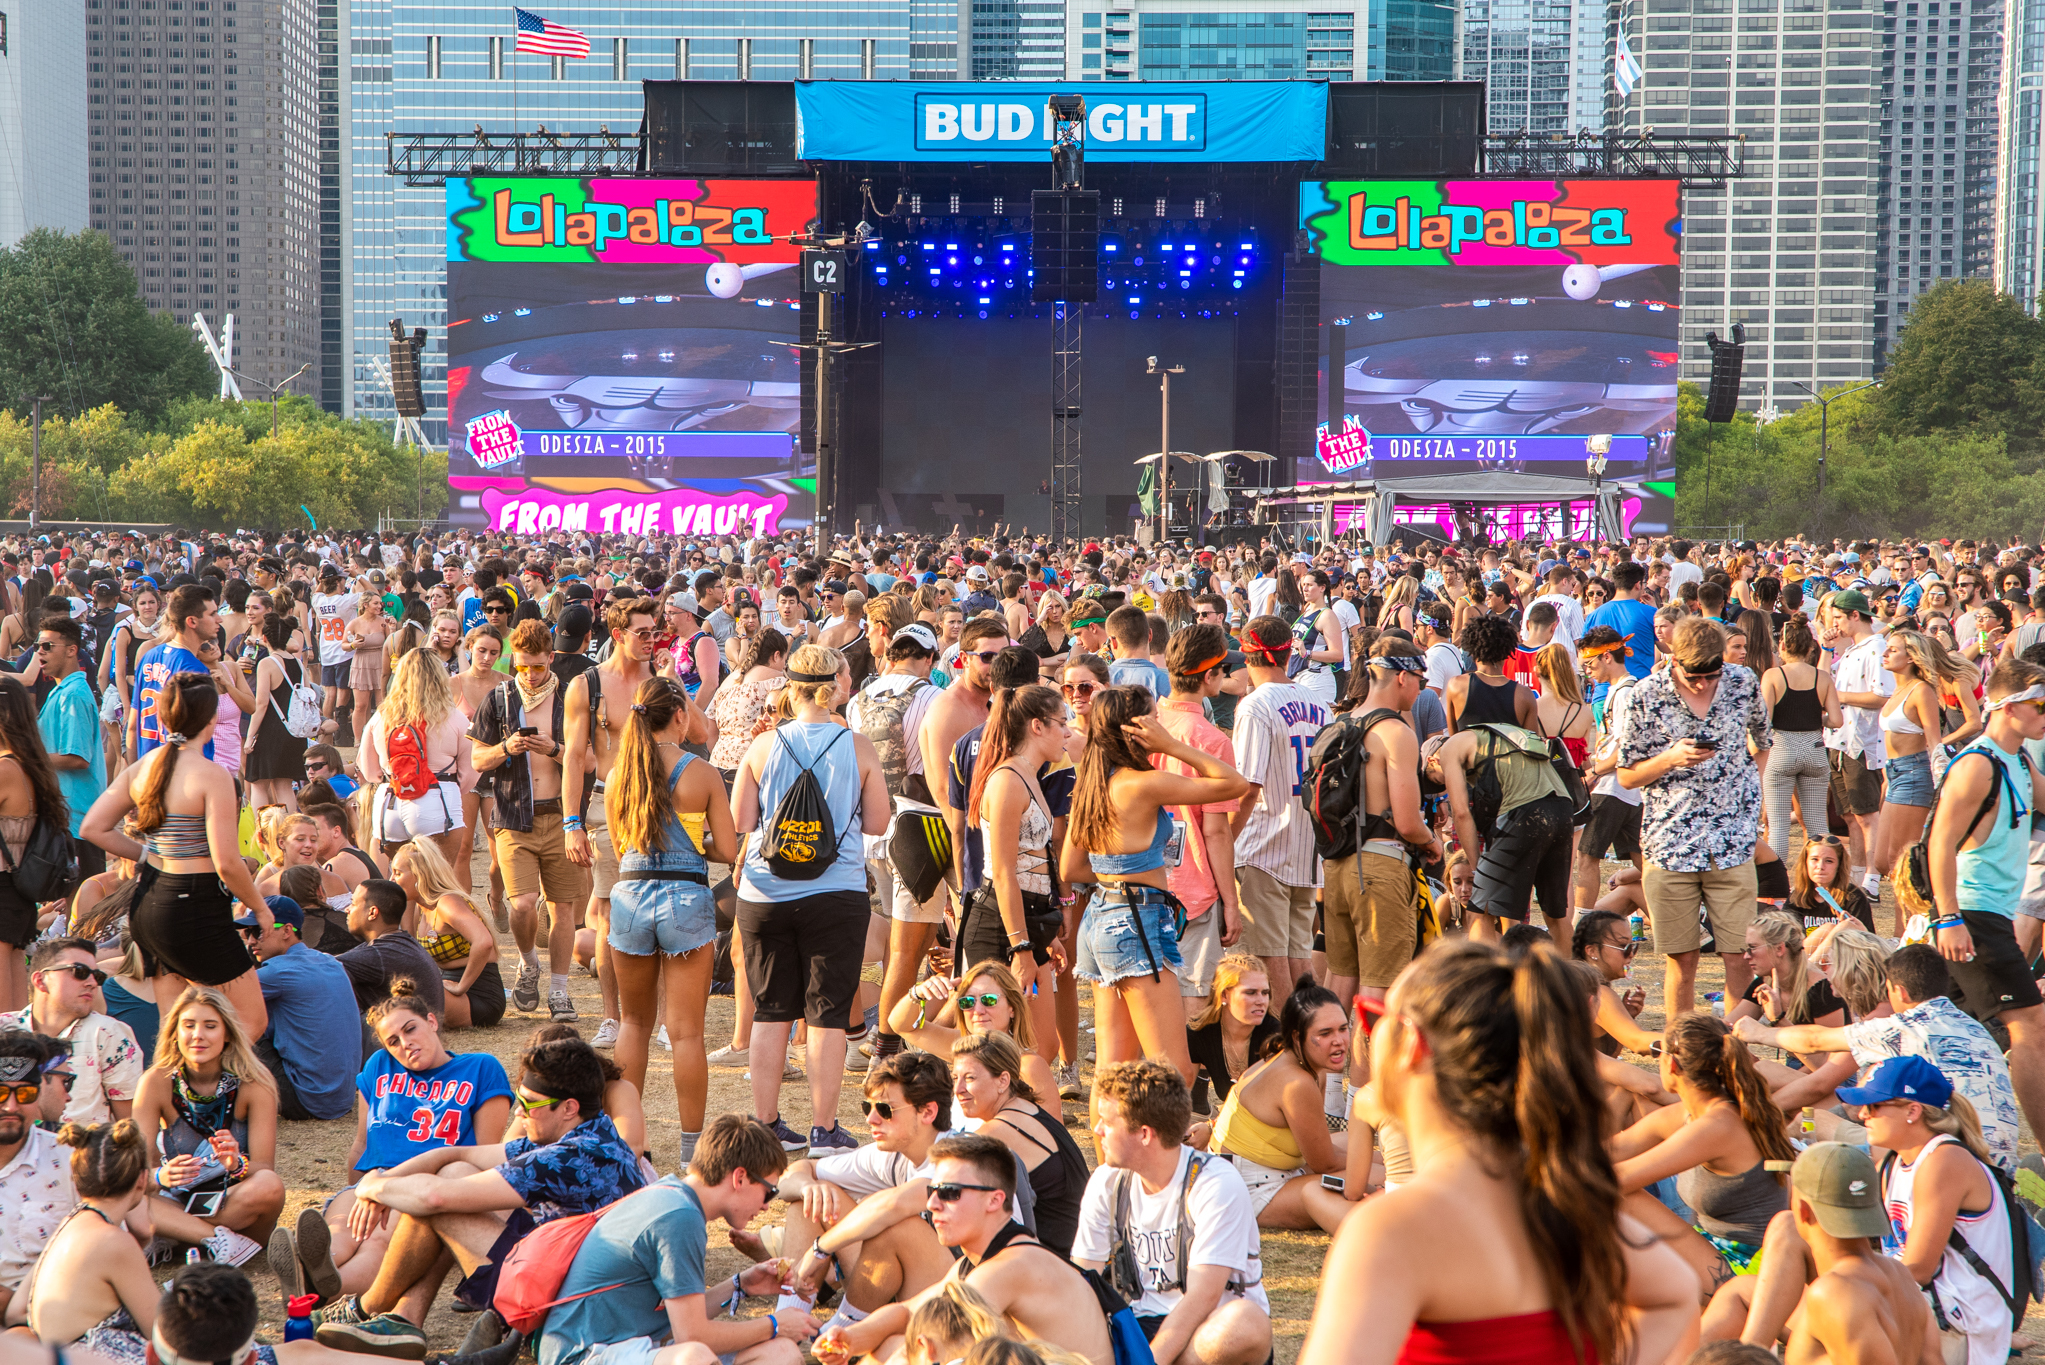 Lollapalooza's lineup announcement has been delayed